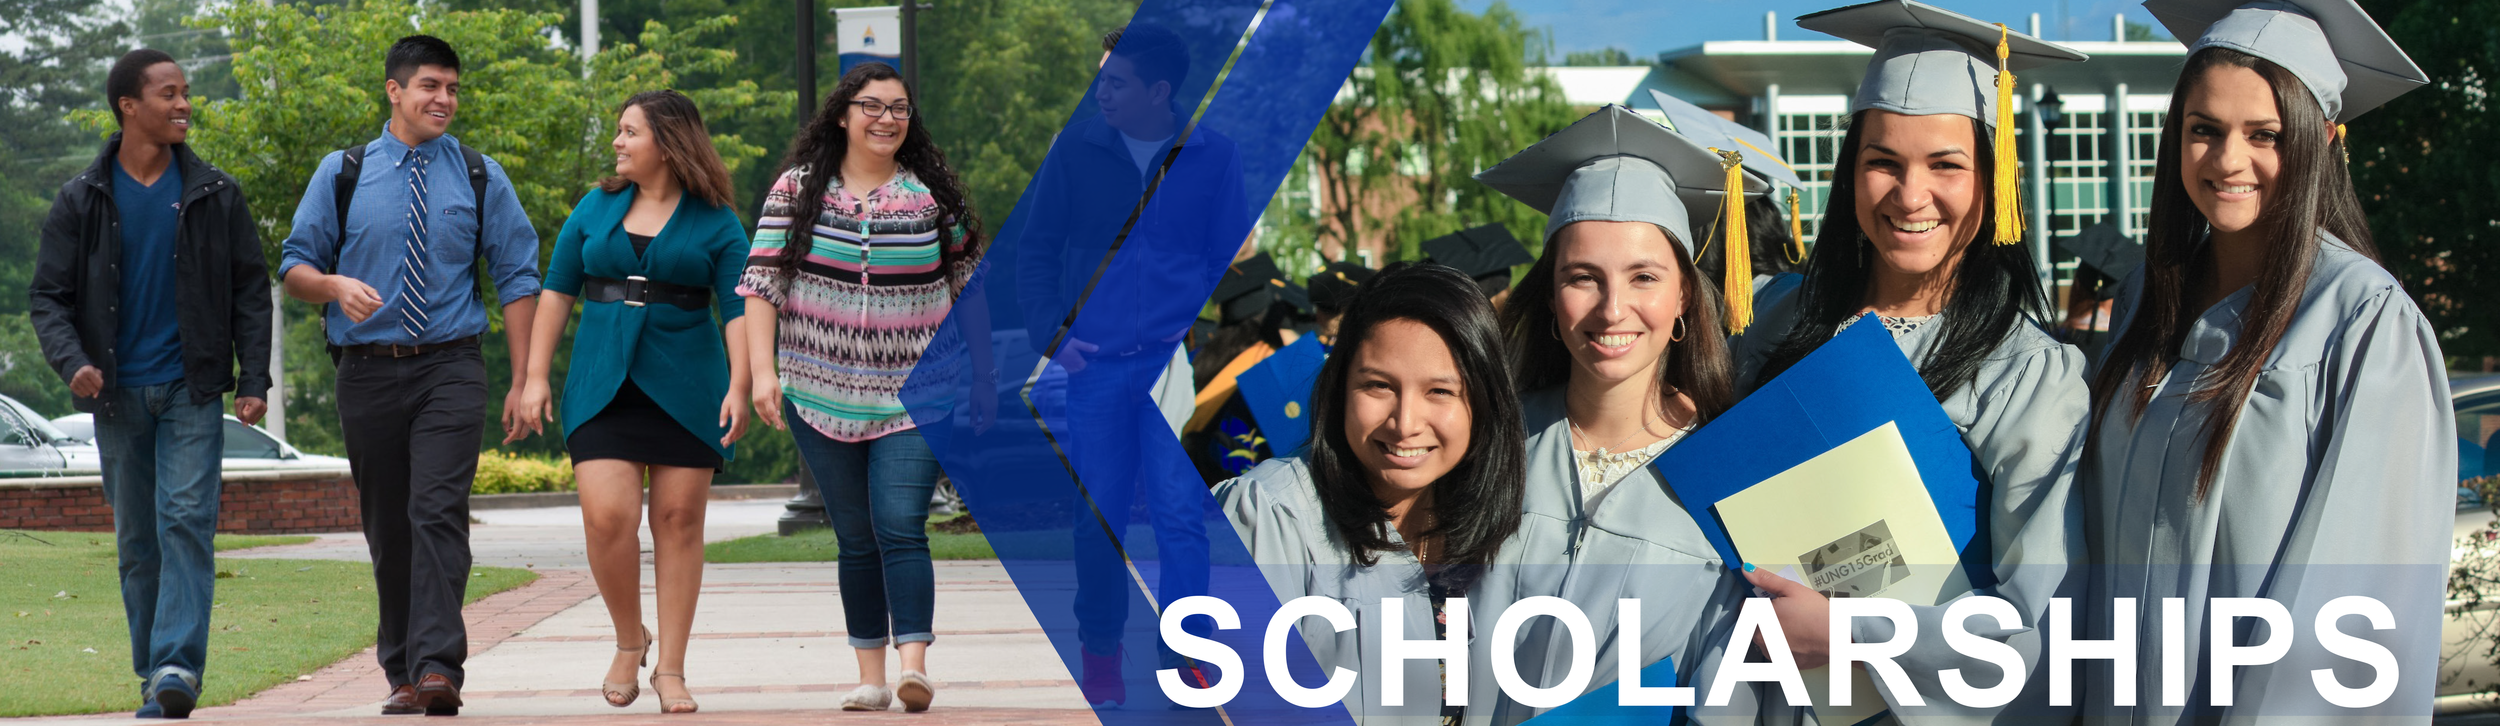 Scholarship page banner features a photo of students walking outside across the University of North Georgia Gainesville Campus. The second image shows four girls posing for a graduation photo while wearing their grey cap and gowns.